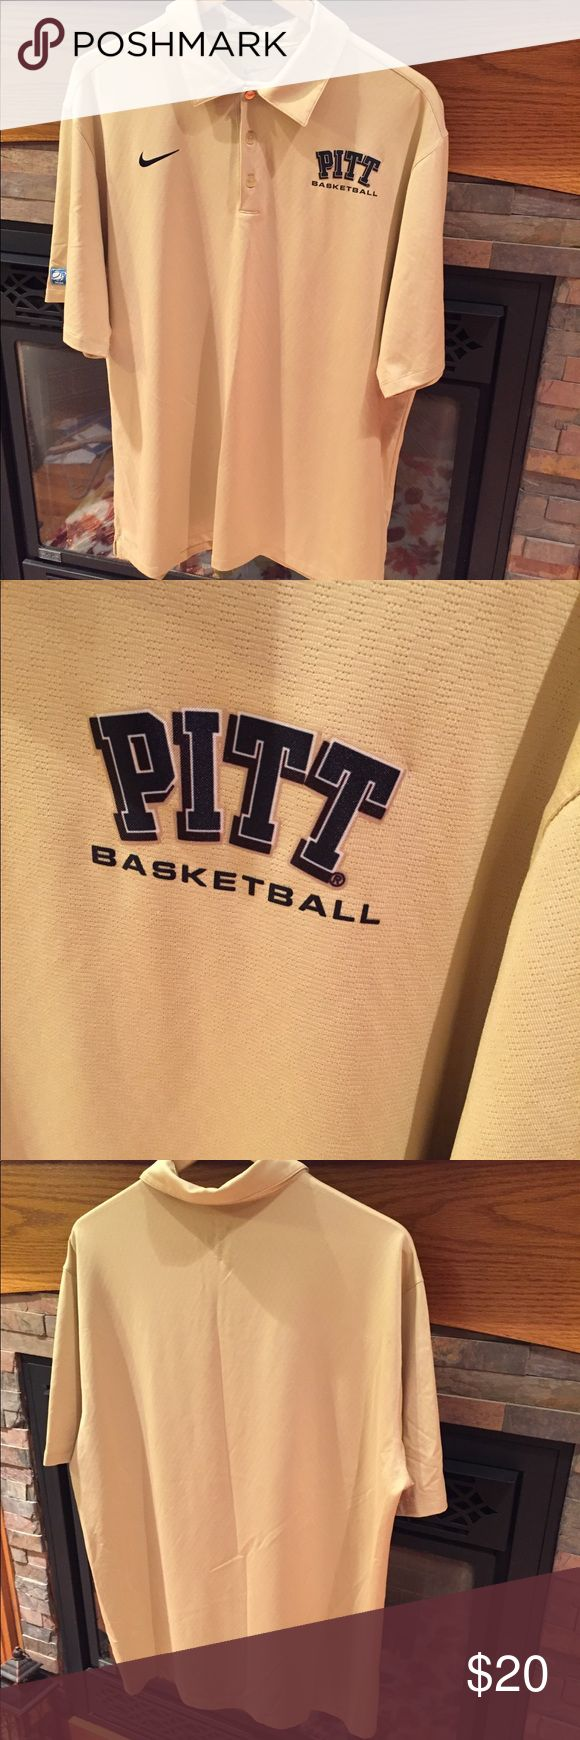 Nike Dri Fit PITT Basketball polo shirt EUC✨ Show  your pride for your team with this awesome PITT Basketball polo shirt. Perfect to wear to cheer your team on or wear it out on the golf course. Short sleeve shirt, with 3 buttons in front, PITT Basketball on left chest, NCAA emblem on right sleeve and Nike swoosh on the front.  Size Large  94% polyester 6% spandex No stains, marks or holes. From a smoke and pet free home. Nike Shirts Polos